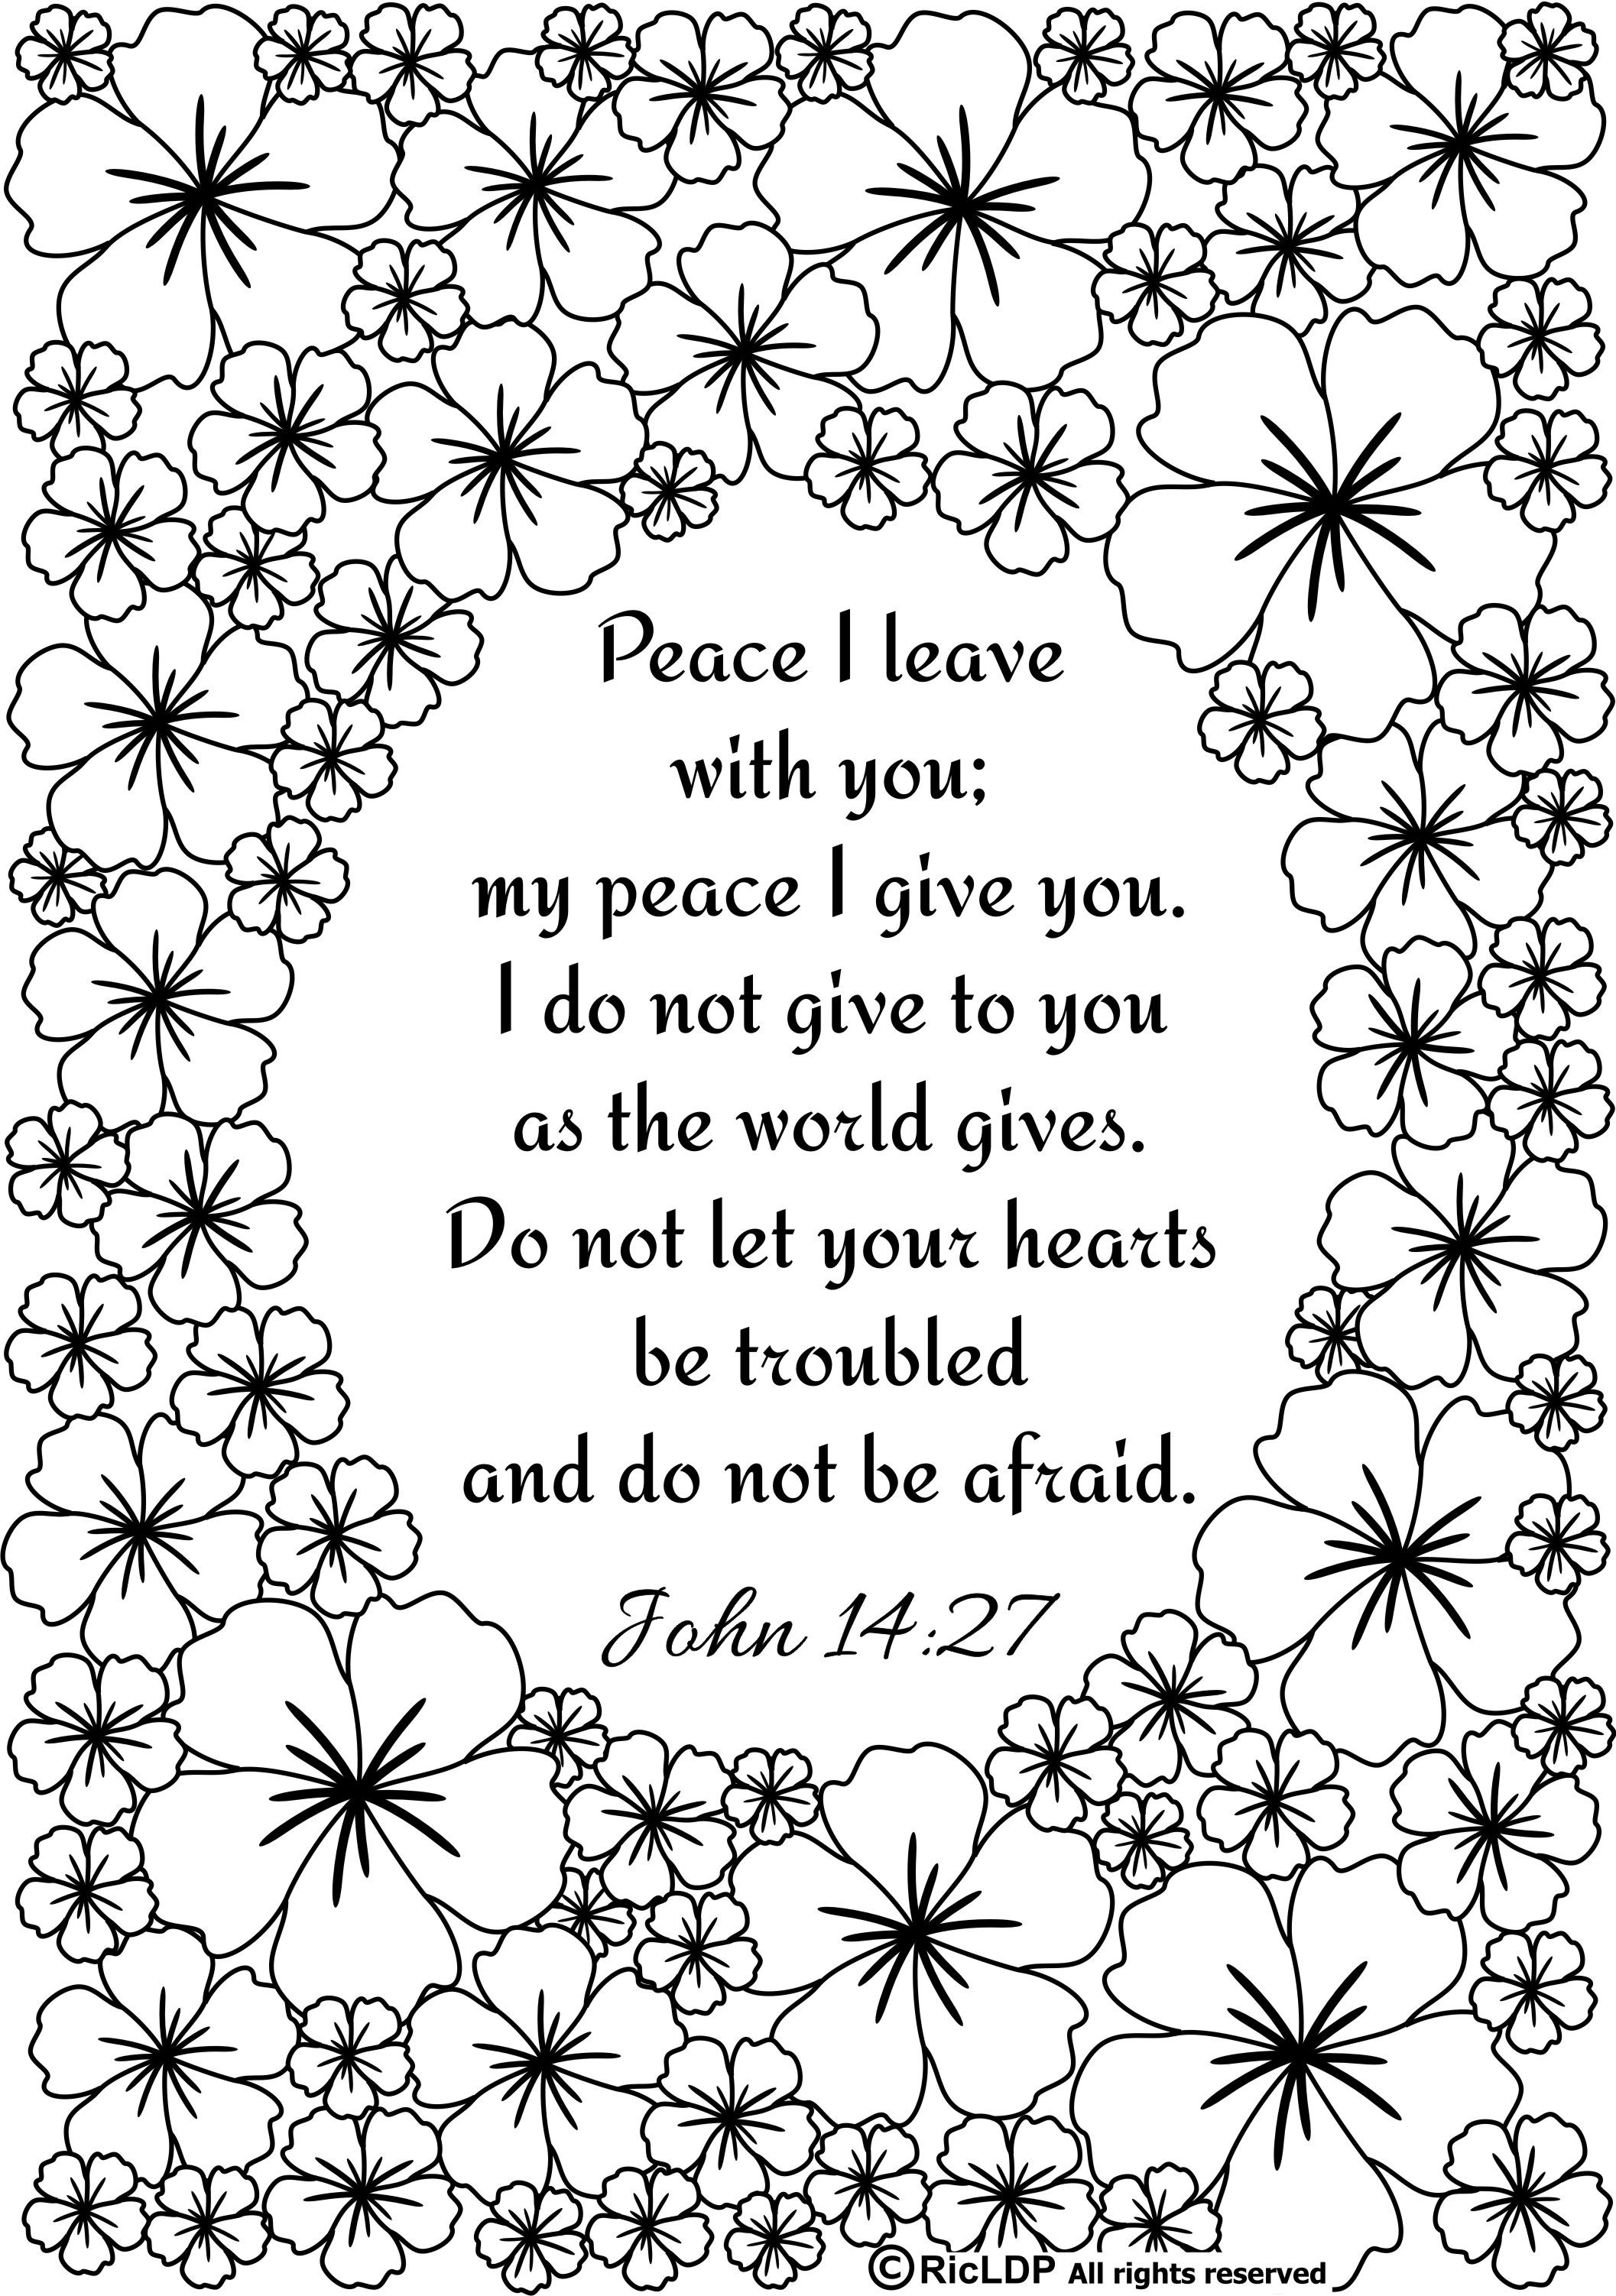 Ricldp Artworks (Ricldp) | Coloring Pages!!! | Pinterest | Bible - Free Printable Bible Coloring Pages